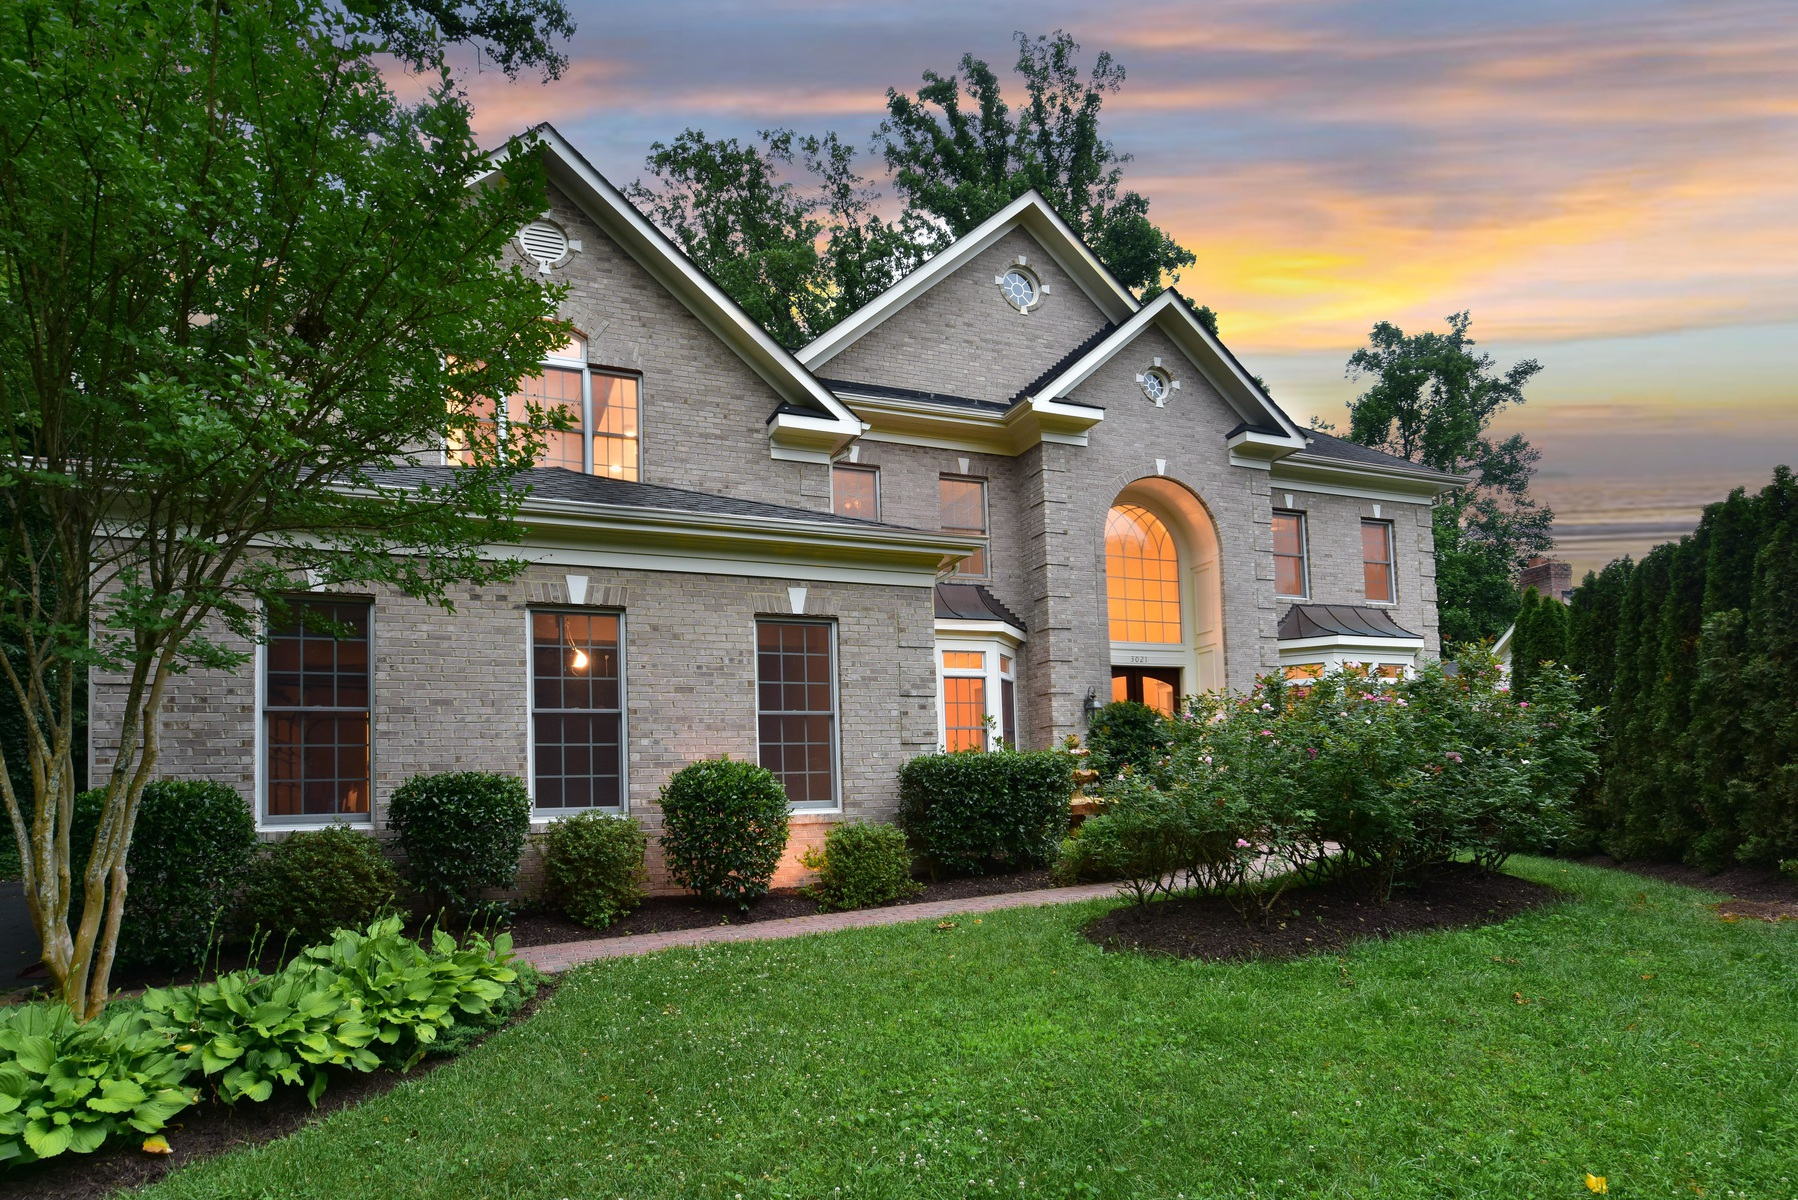 Single Family Home for Sale at Buffalo Hill 3021 Castle Rd Falls Church, Virginia 22044 United States